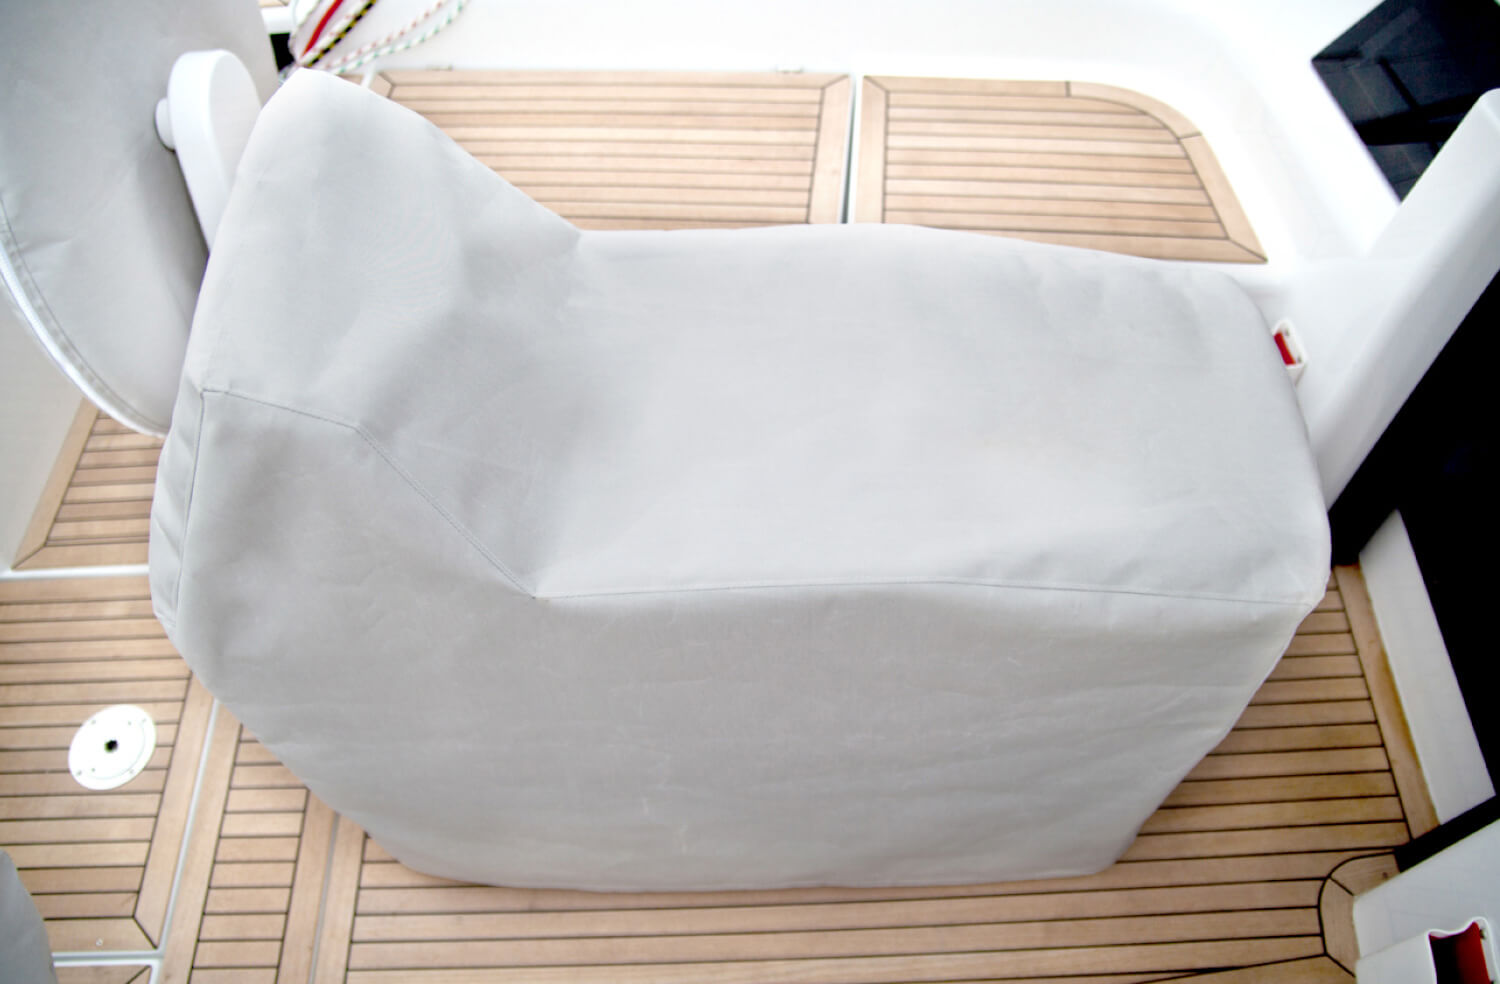 Hanse_Cockpit-Table-Cover.jpg